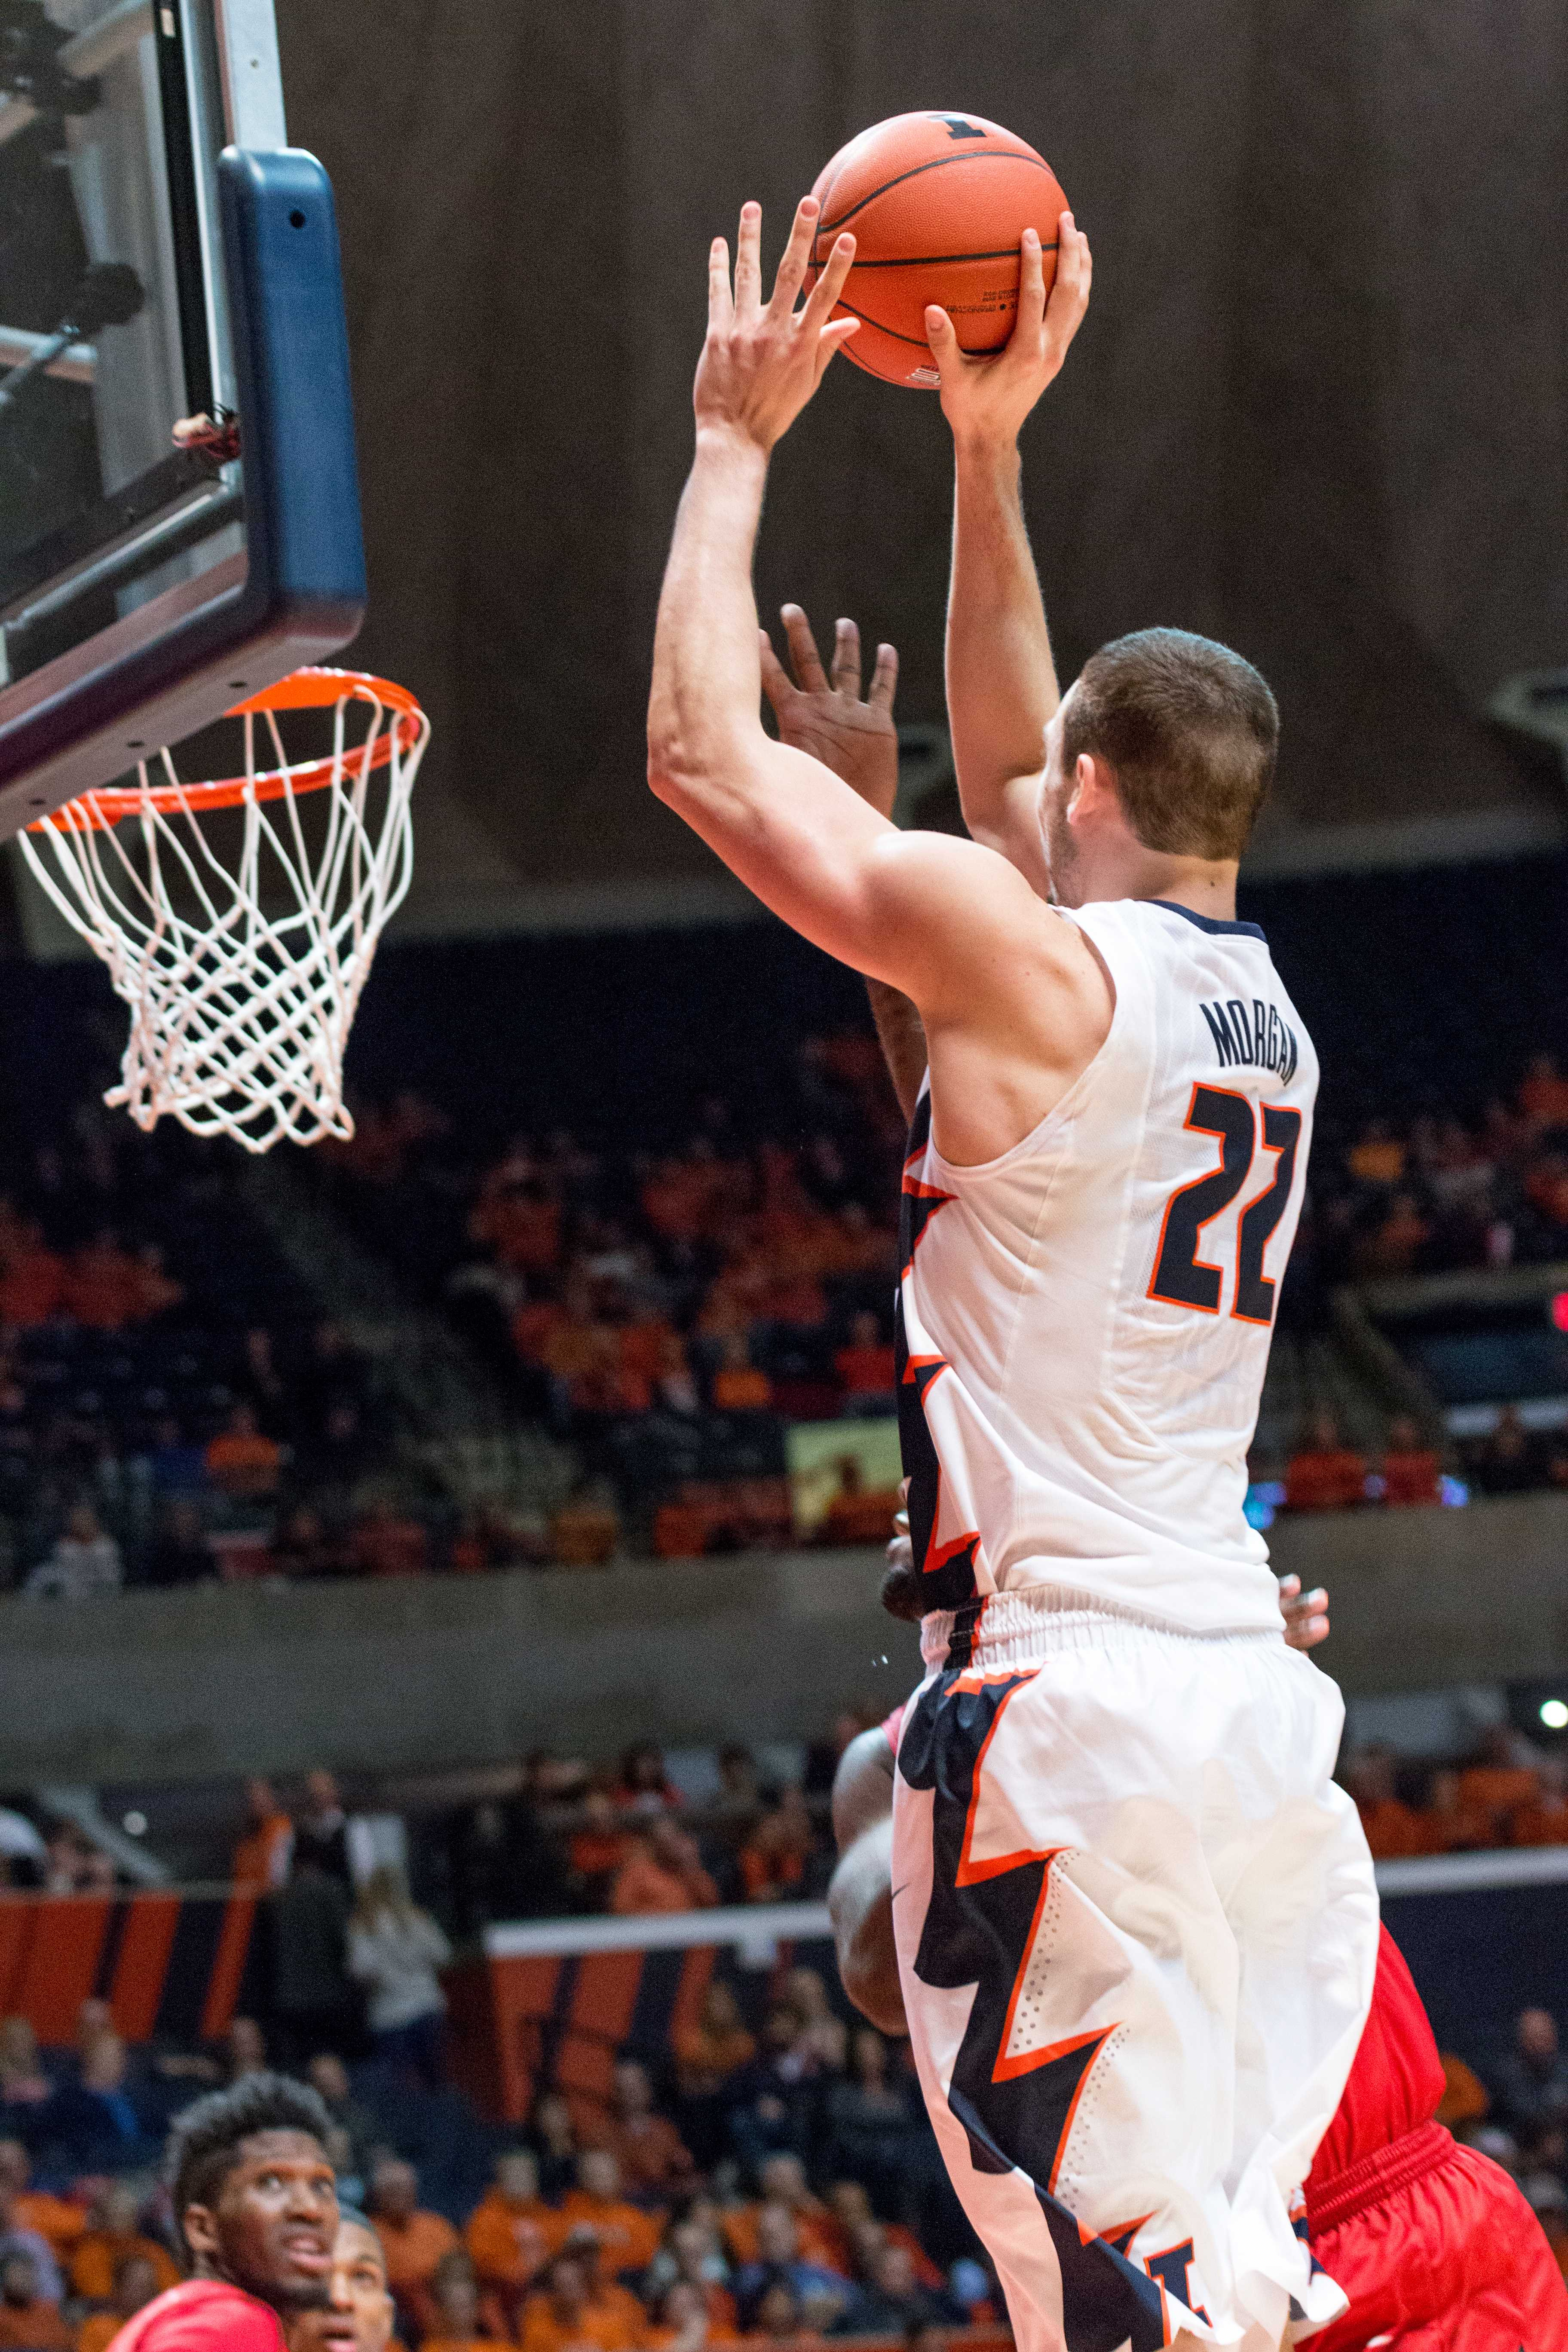 Illinois' Maverick Morgan takes a short jumper during the game against Rutgers at the State Farm Center on February 17. The Illini won 82-66.